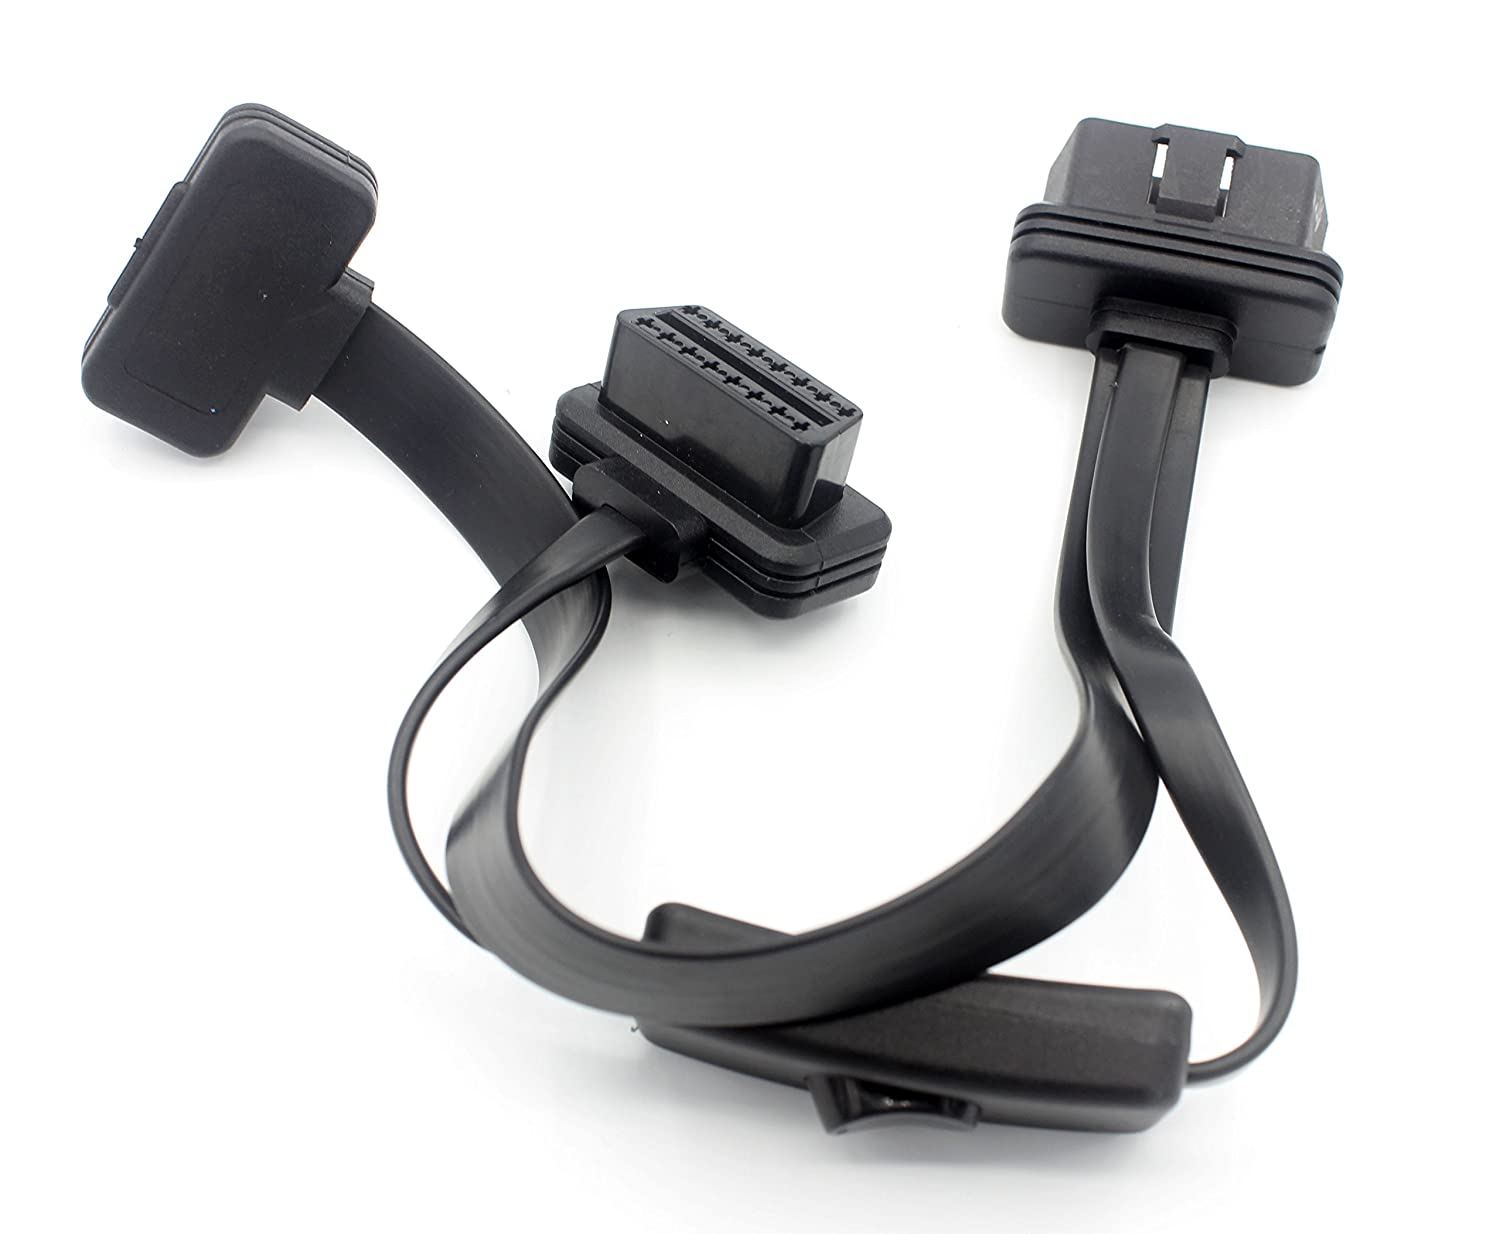 LoongGate OBD-II Cable de extensi/ón OBD2 Ultra Low Profile 0.6 Metros Flat Ribbon Cable 8-pin Pass-through para Bluetooth Wifi USB ECU Readers OBDII Code Scanners